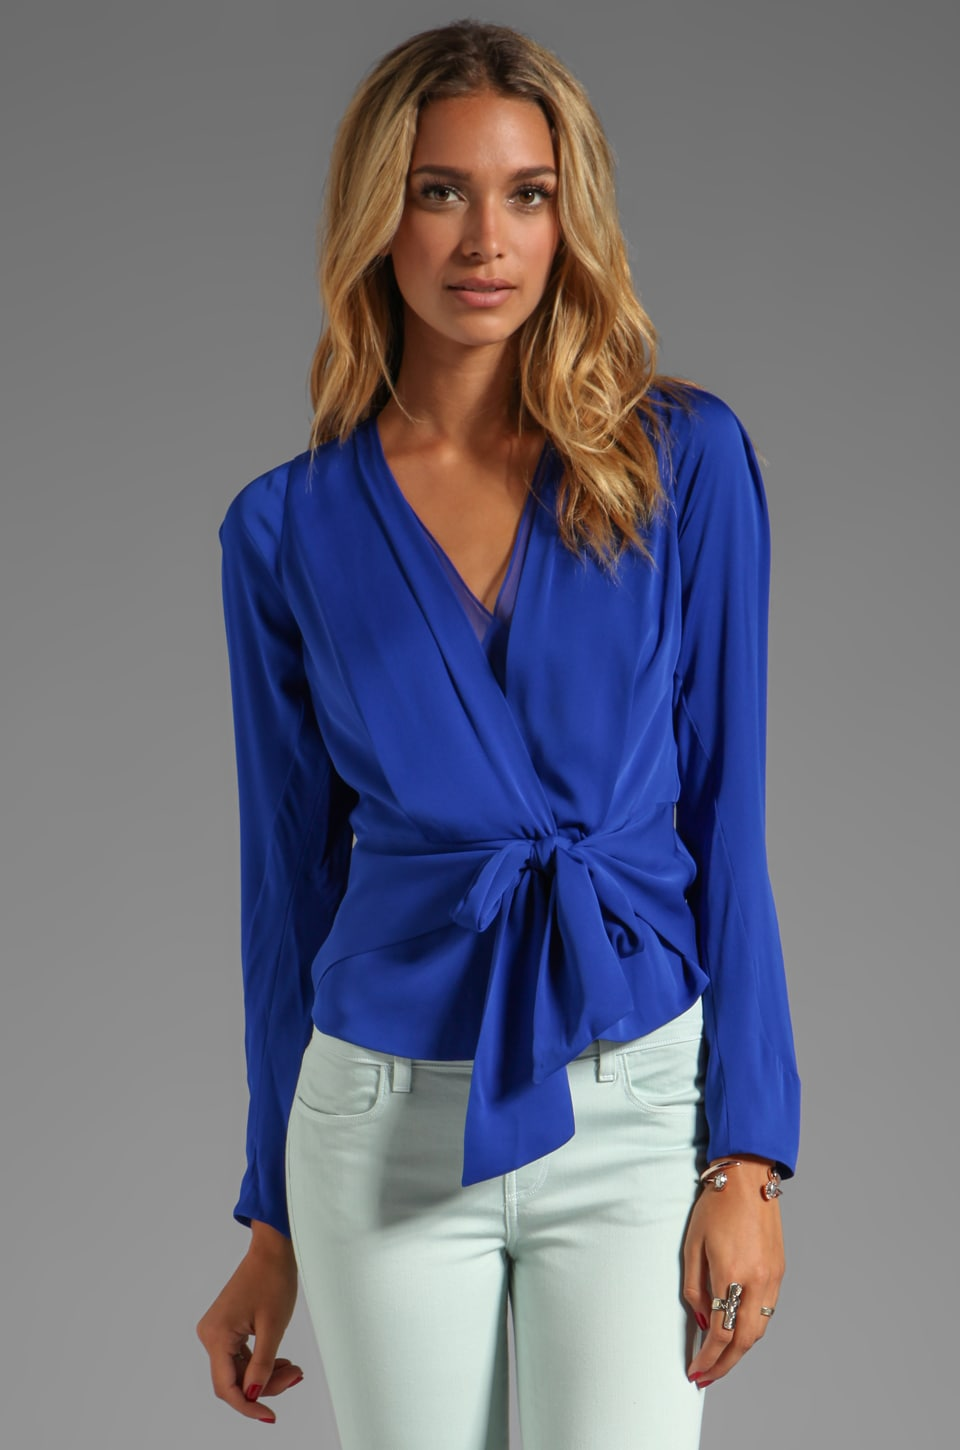 Diane von Furstenberg Teagan Top in Vivid Blue